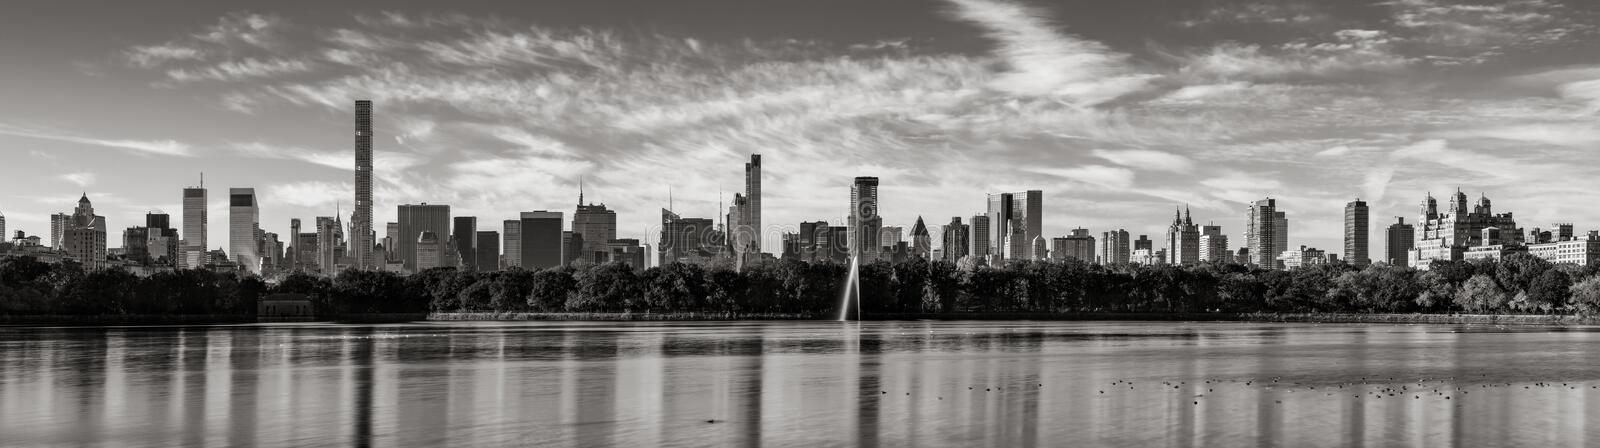 Skyscrapers of Midtown Manhattan and Central Park Reservoir in Black & White. New York City royalty free stock images